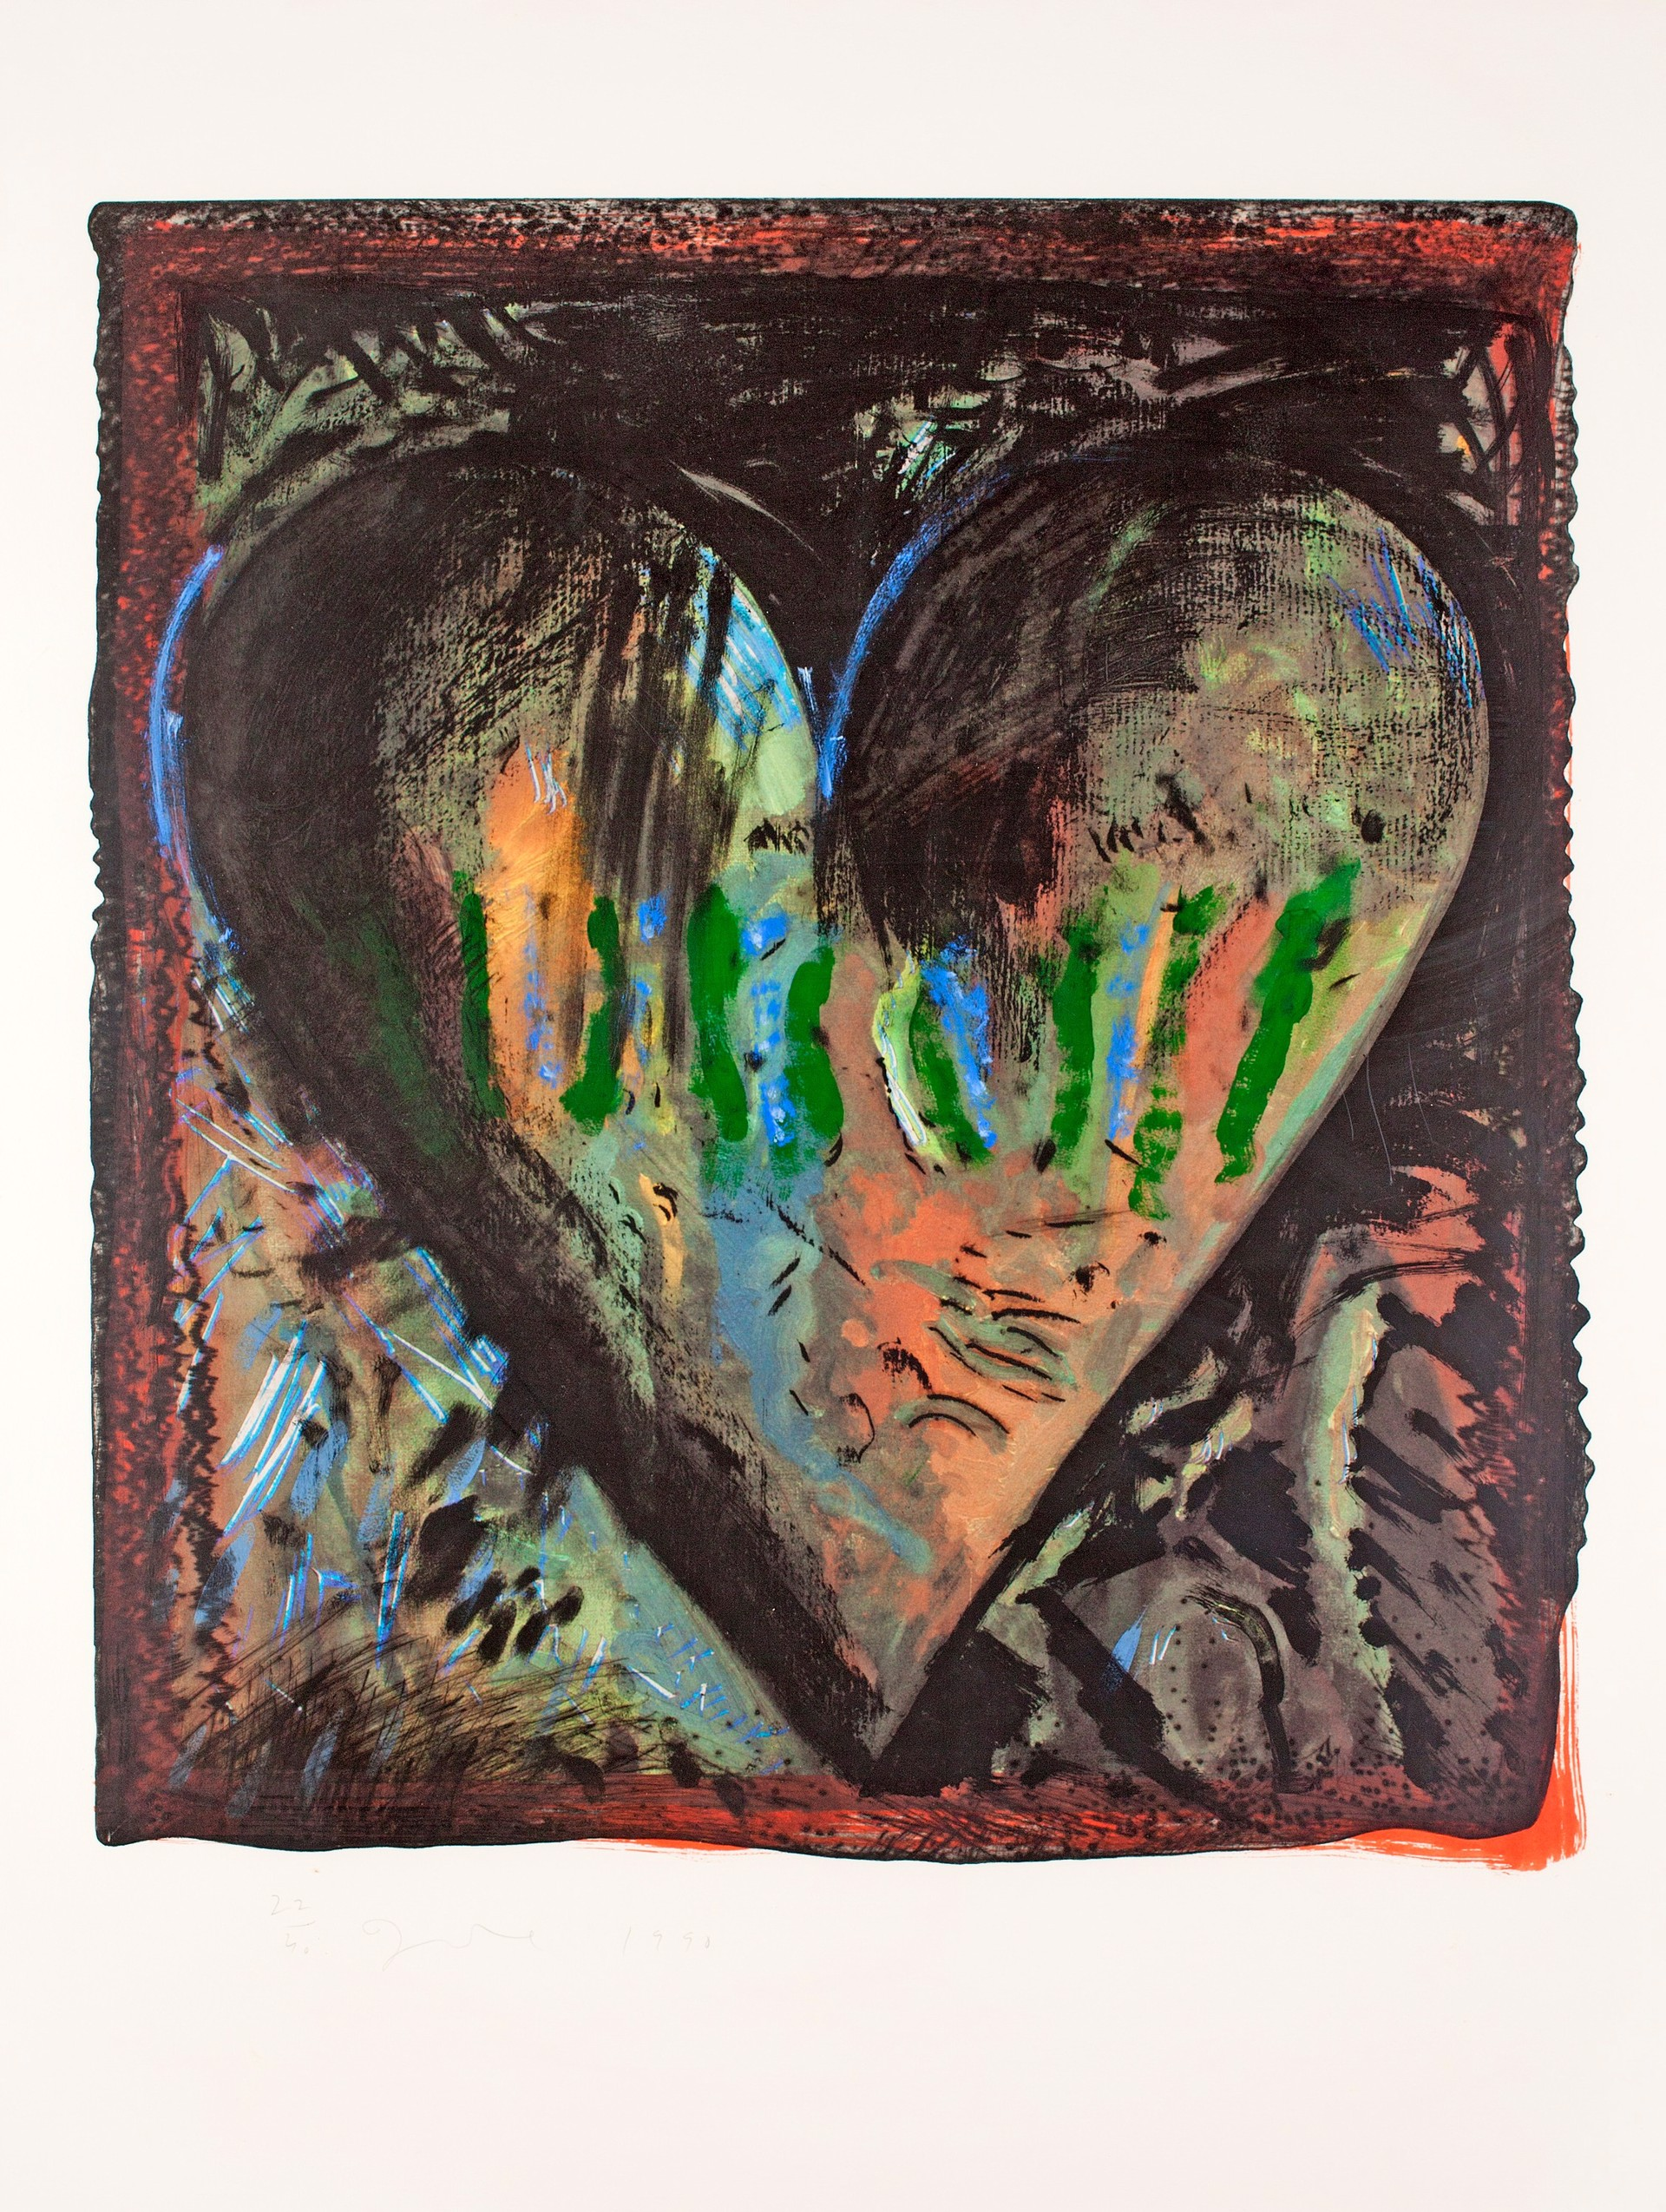 The Hand-Colored Viennese Hearts, II by Jim Dine